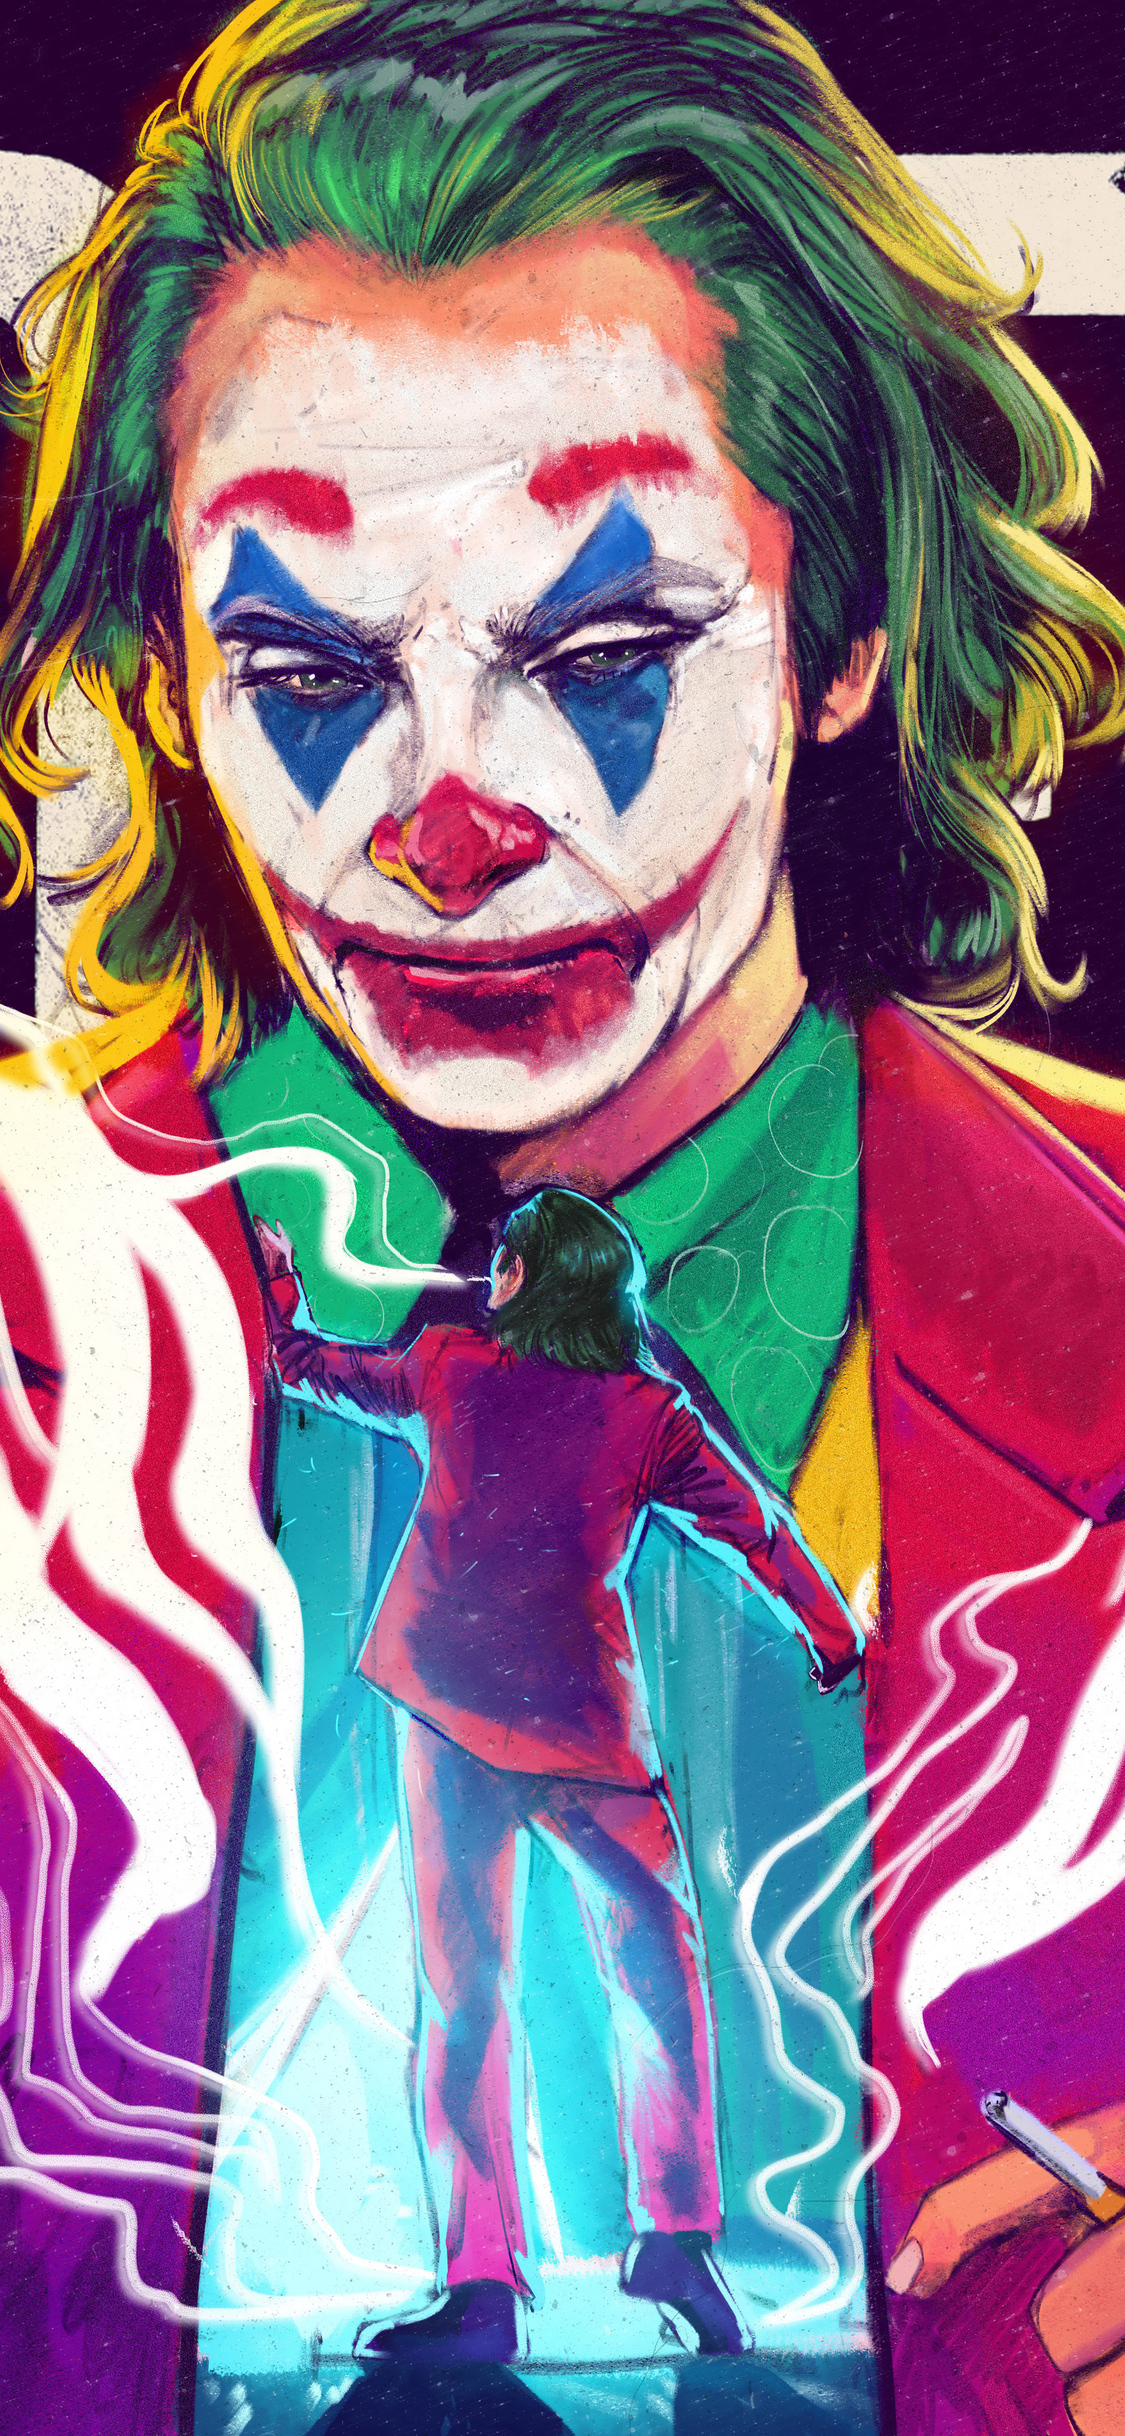 1125x2436 The Joker 4k Joaquin Phoenix Iphone Xs Iphone 10